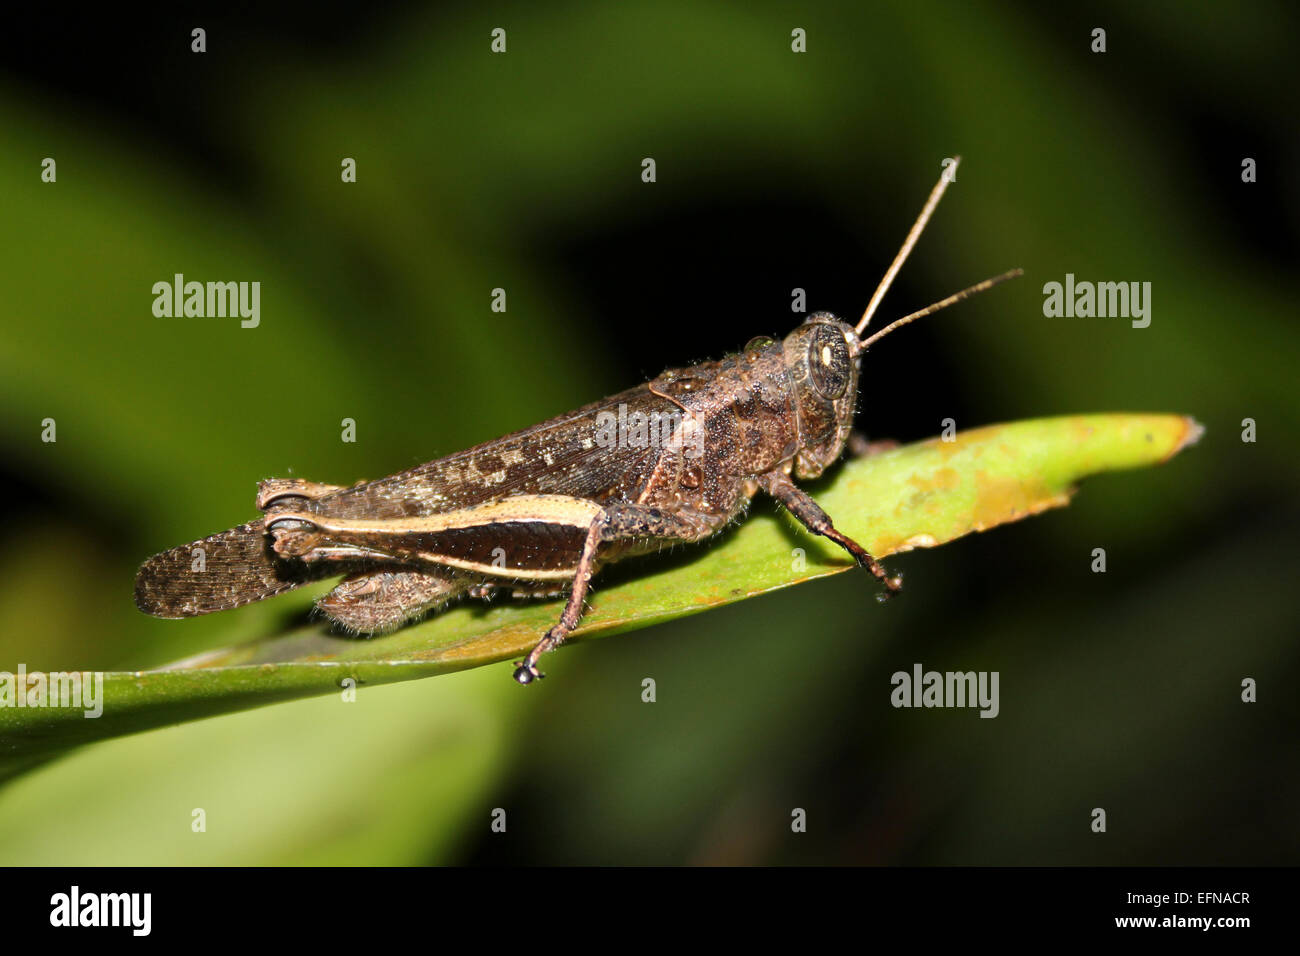 Grasshopper Photographed At Night In Tikal National Park, Guatemala - Stock Image